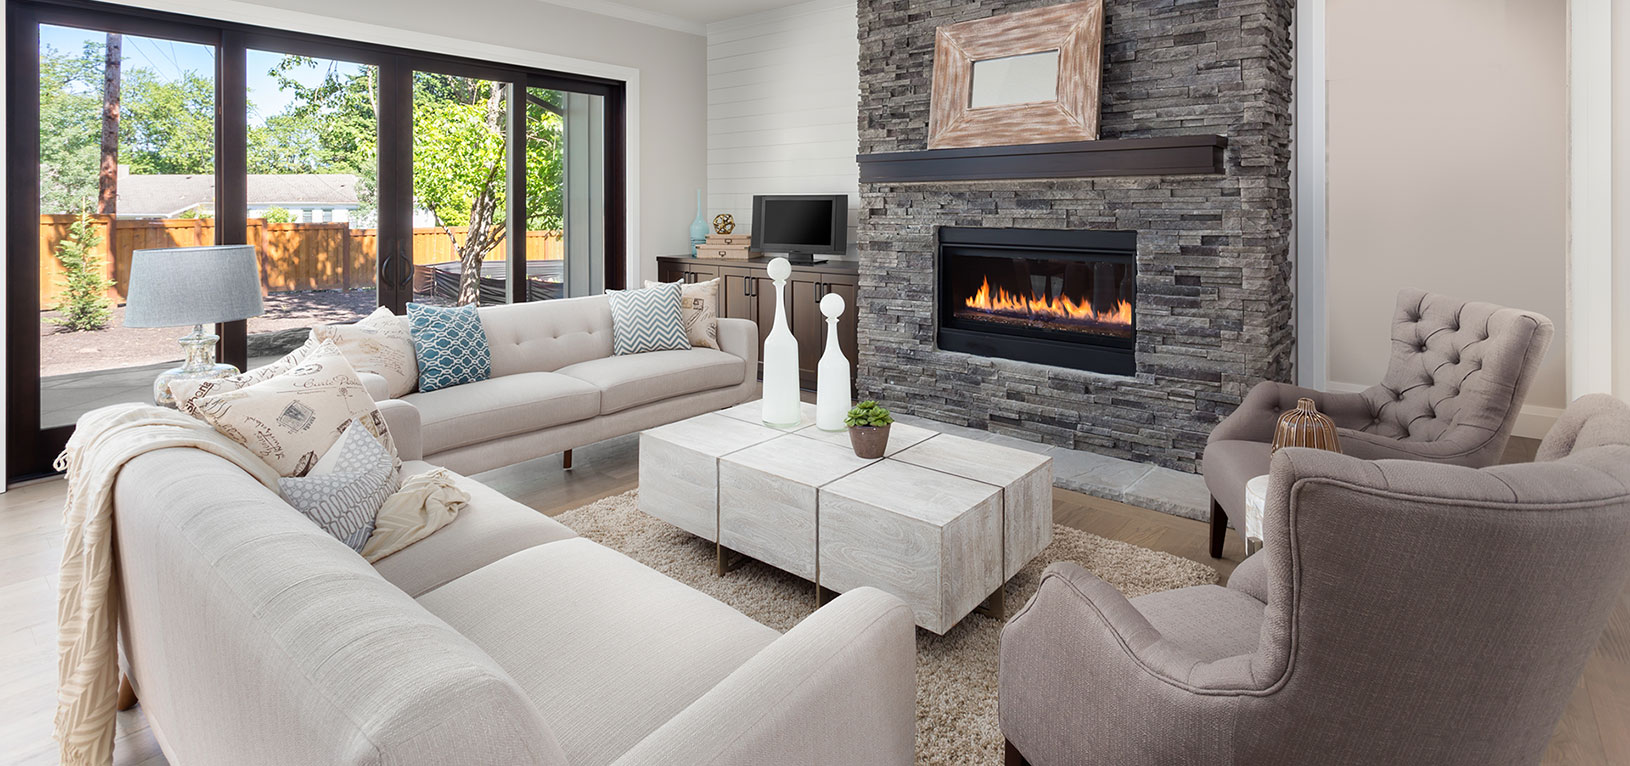 Nashua Fireplace Installation, Fireplace Repair and Gas Fireplace